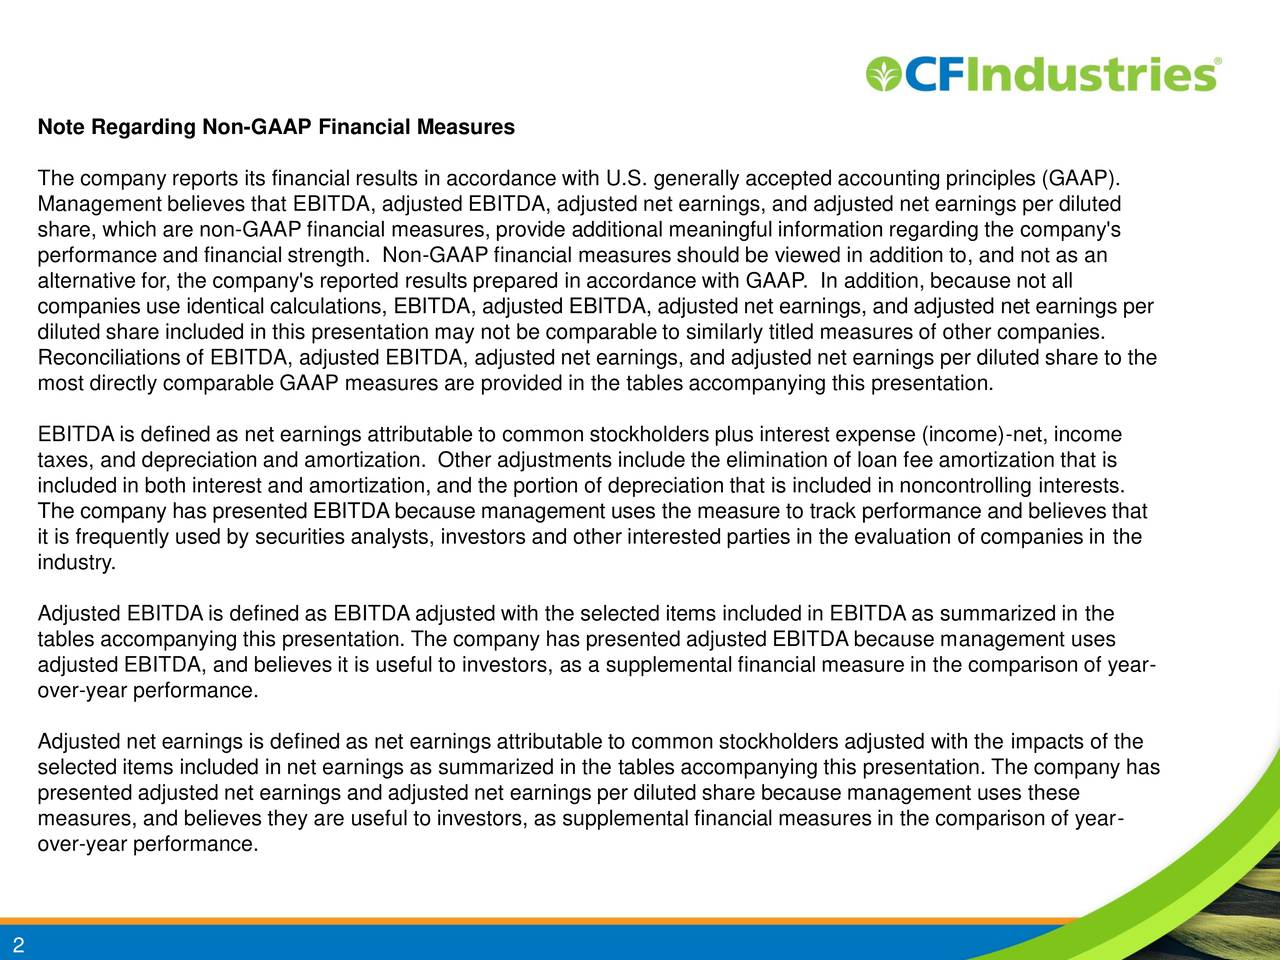 The company reports its financial results in accordance with U.S. generally accepted accounting principles (GAAP). Management believes that EBITDA, adjusted EBITDA, adjusted net earnings, and adjusted net earnings per diluted share, which are non-GAAP financial measures, provide additional meaningful information regarding the company's performance and financial strength. Non-GAAP financial measures should be viewed in addition to, and not as an alternative for, the company's reported results prepared in accordance with GAAP. In addition, because not all companies use identical calculations, EBITDA, adjusted EBITDA, adjusted net earnings, and adjusted net earnings per diluted share included in this presentation may not be comparable to similarly titled measures of other companies. Reconciliations of EBITDA, adjusted EBITDA, adjusted net earnings, and adjusted net earnings per diluted share to the most directly comparable GAAP measures are provided in the tables accompanying this presentation. EBITDA is defined as net earnings attributable to common stockholders plus interest expense (income)-net, income taxes, and depreciation and amortization. Other adjustments include the elimination of loan fee amortization that is included in both interest and amortization, and the portion of depreciation that is included in noncontrolling interests. The company has presented EBITDA because management uses the measure to track performance and believes that it is frequently used by securities analysts, investors and other interested parties in the evaluation of companies in the industry. Adjusted EBITDA is defined as EBITDA adjusted with the selected items included in EBITDA as summarized in the tables accompanying this presentation. The company has presented adjusted EBITDA because management uses adjusted EBITDA, and believes it is useful to investors, as a supplemental financial measure in the comparison of year- over-year performance. Adjusted net earnings is defined as net ea